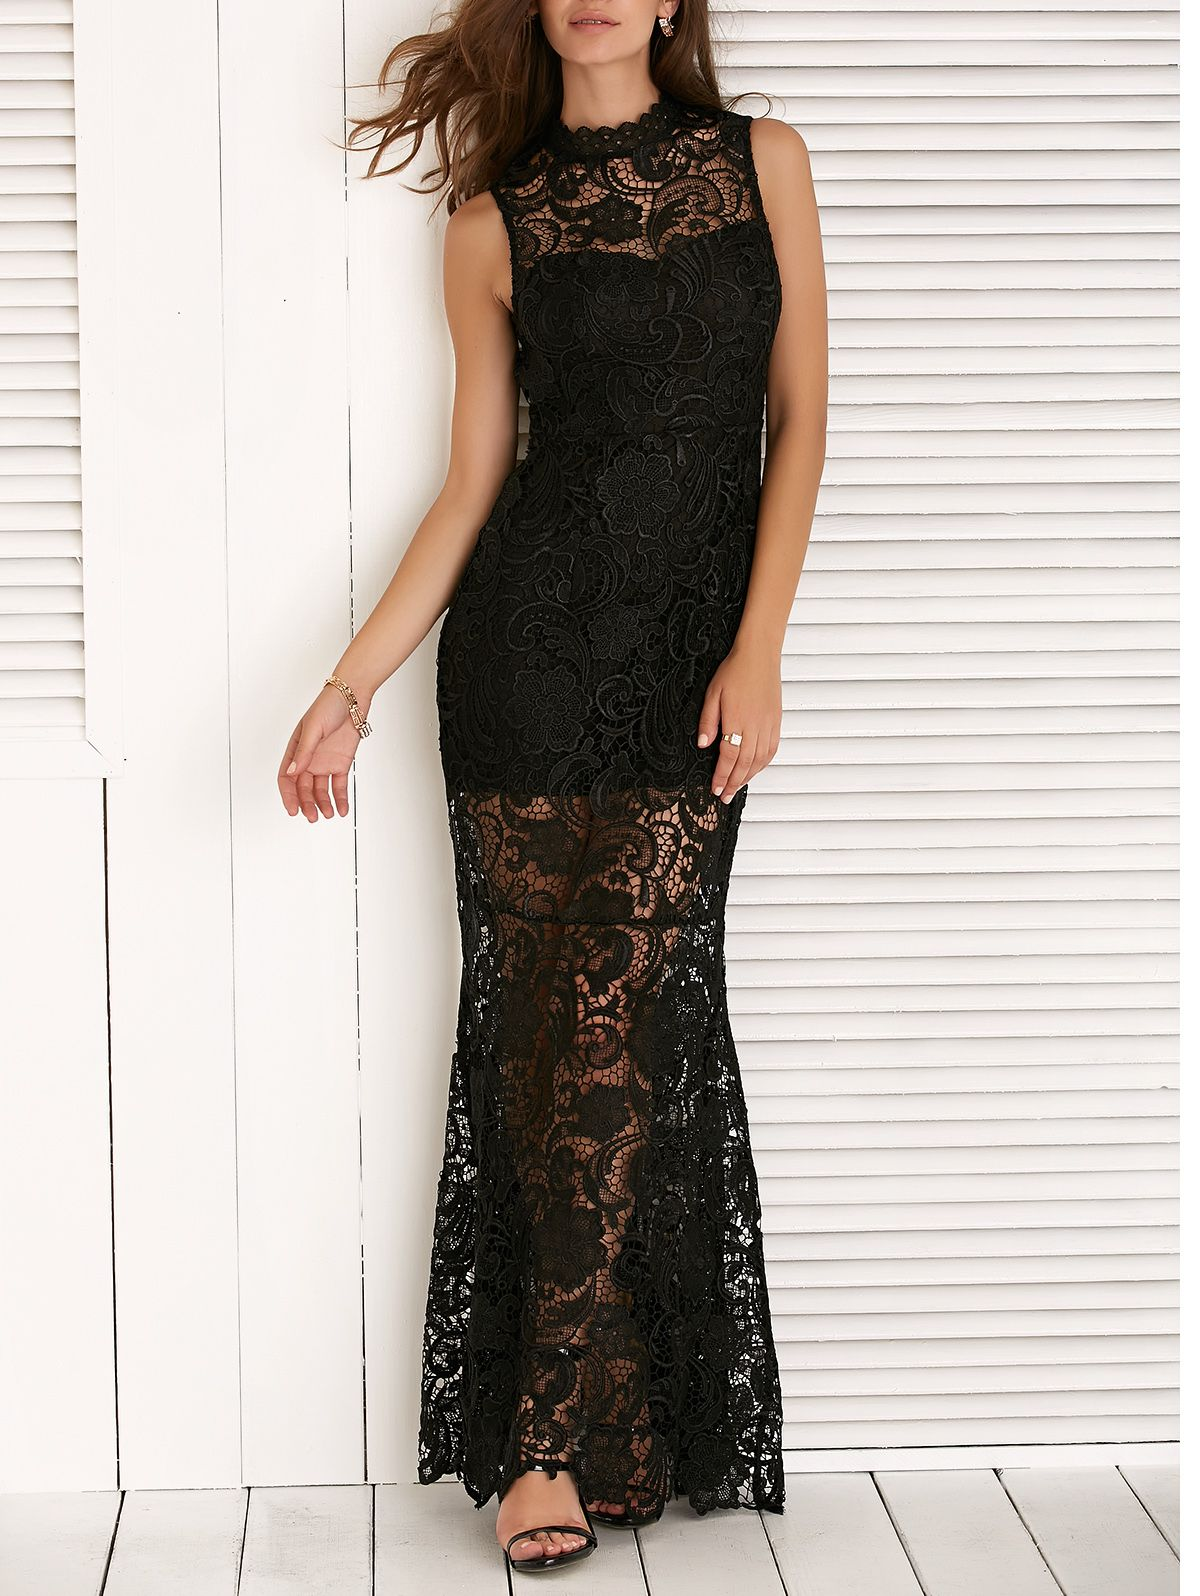 Sleeveless See Through Lace Splicing Maxi Dress Lace Dress With Sleeves Fashion Dresses